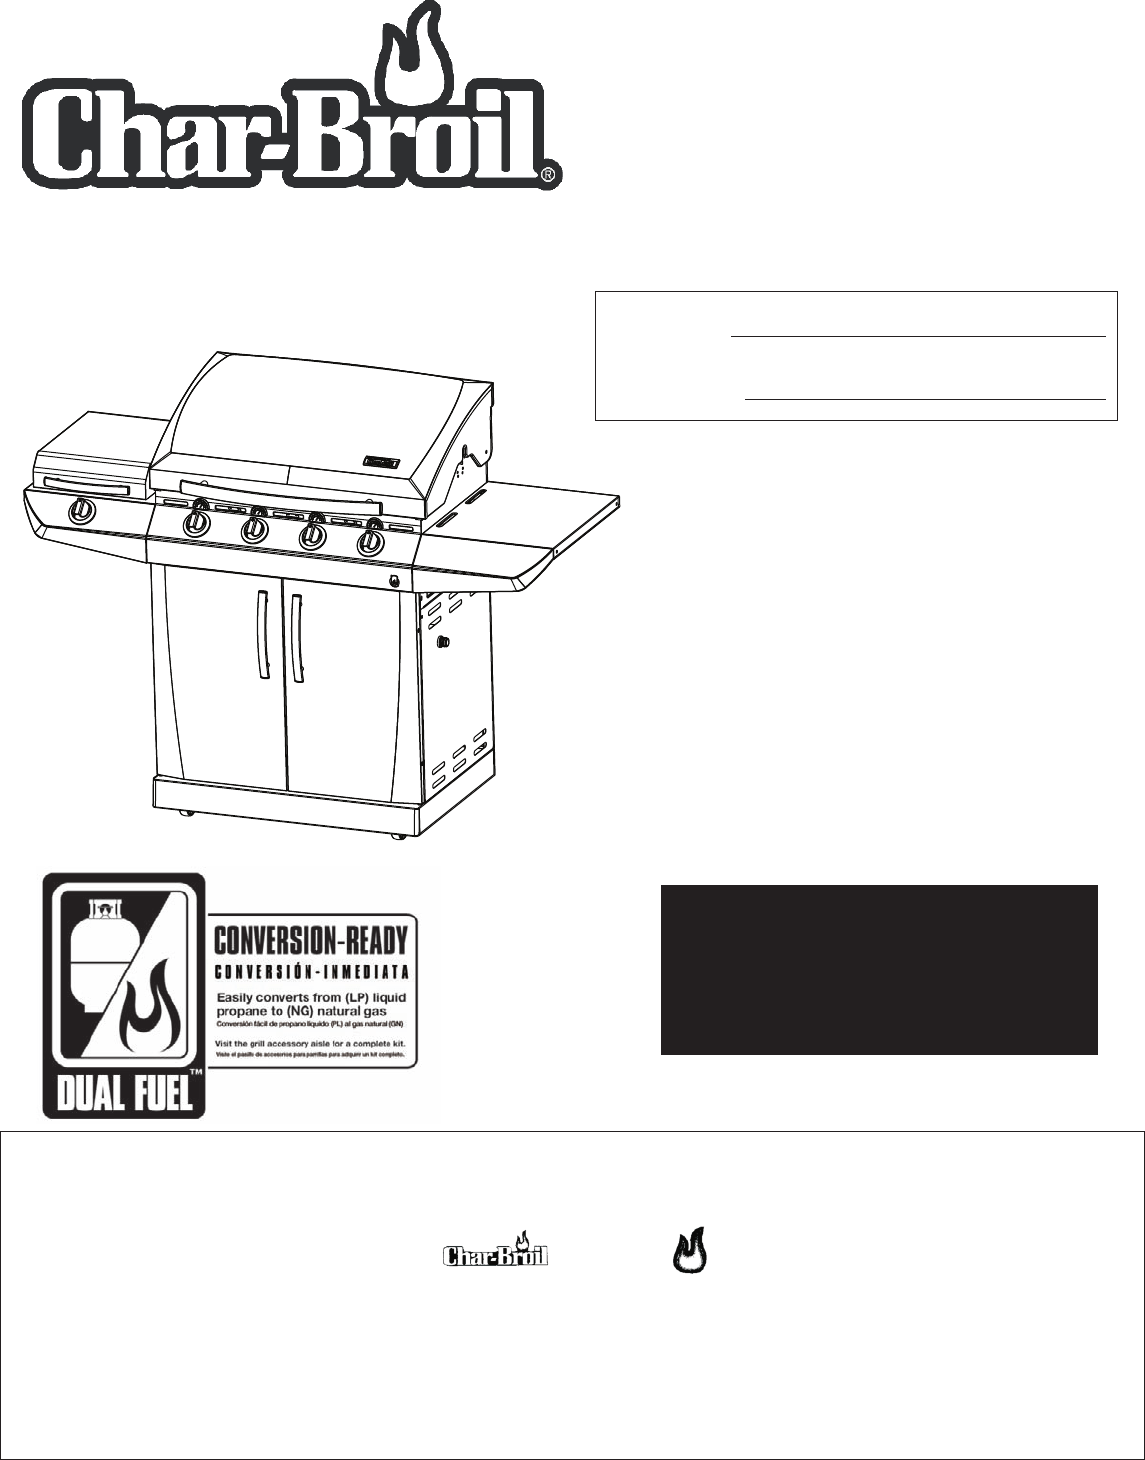 Char-Broil Charcoal Grill 463271309 User Guide